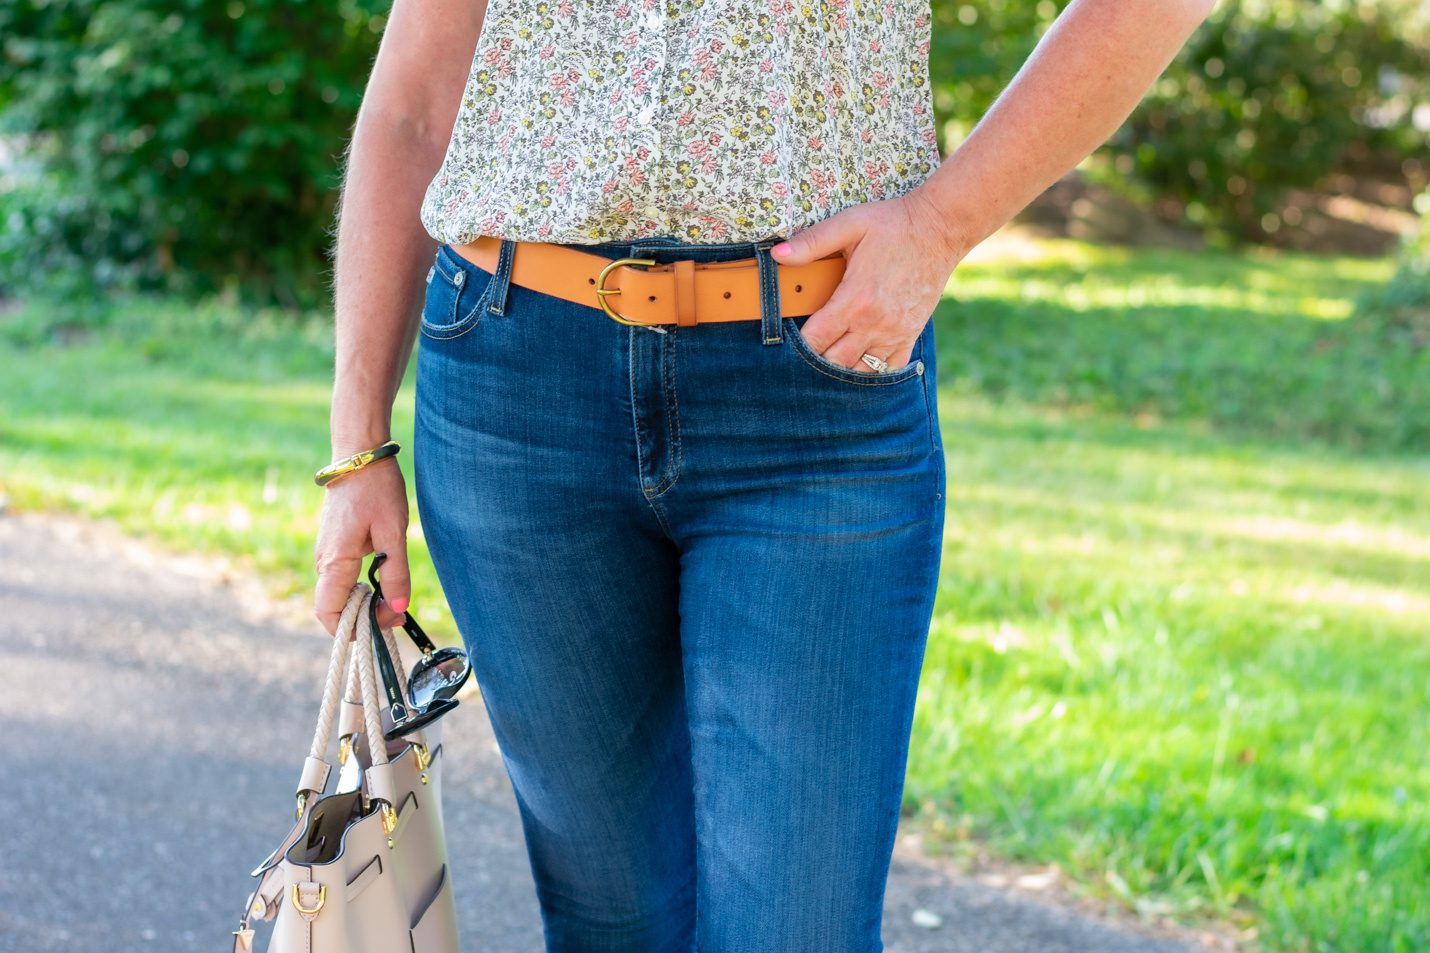 jeans and leather belt